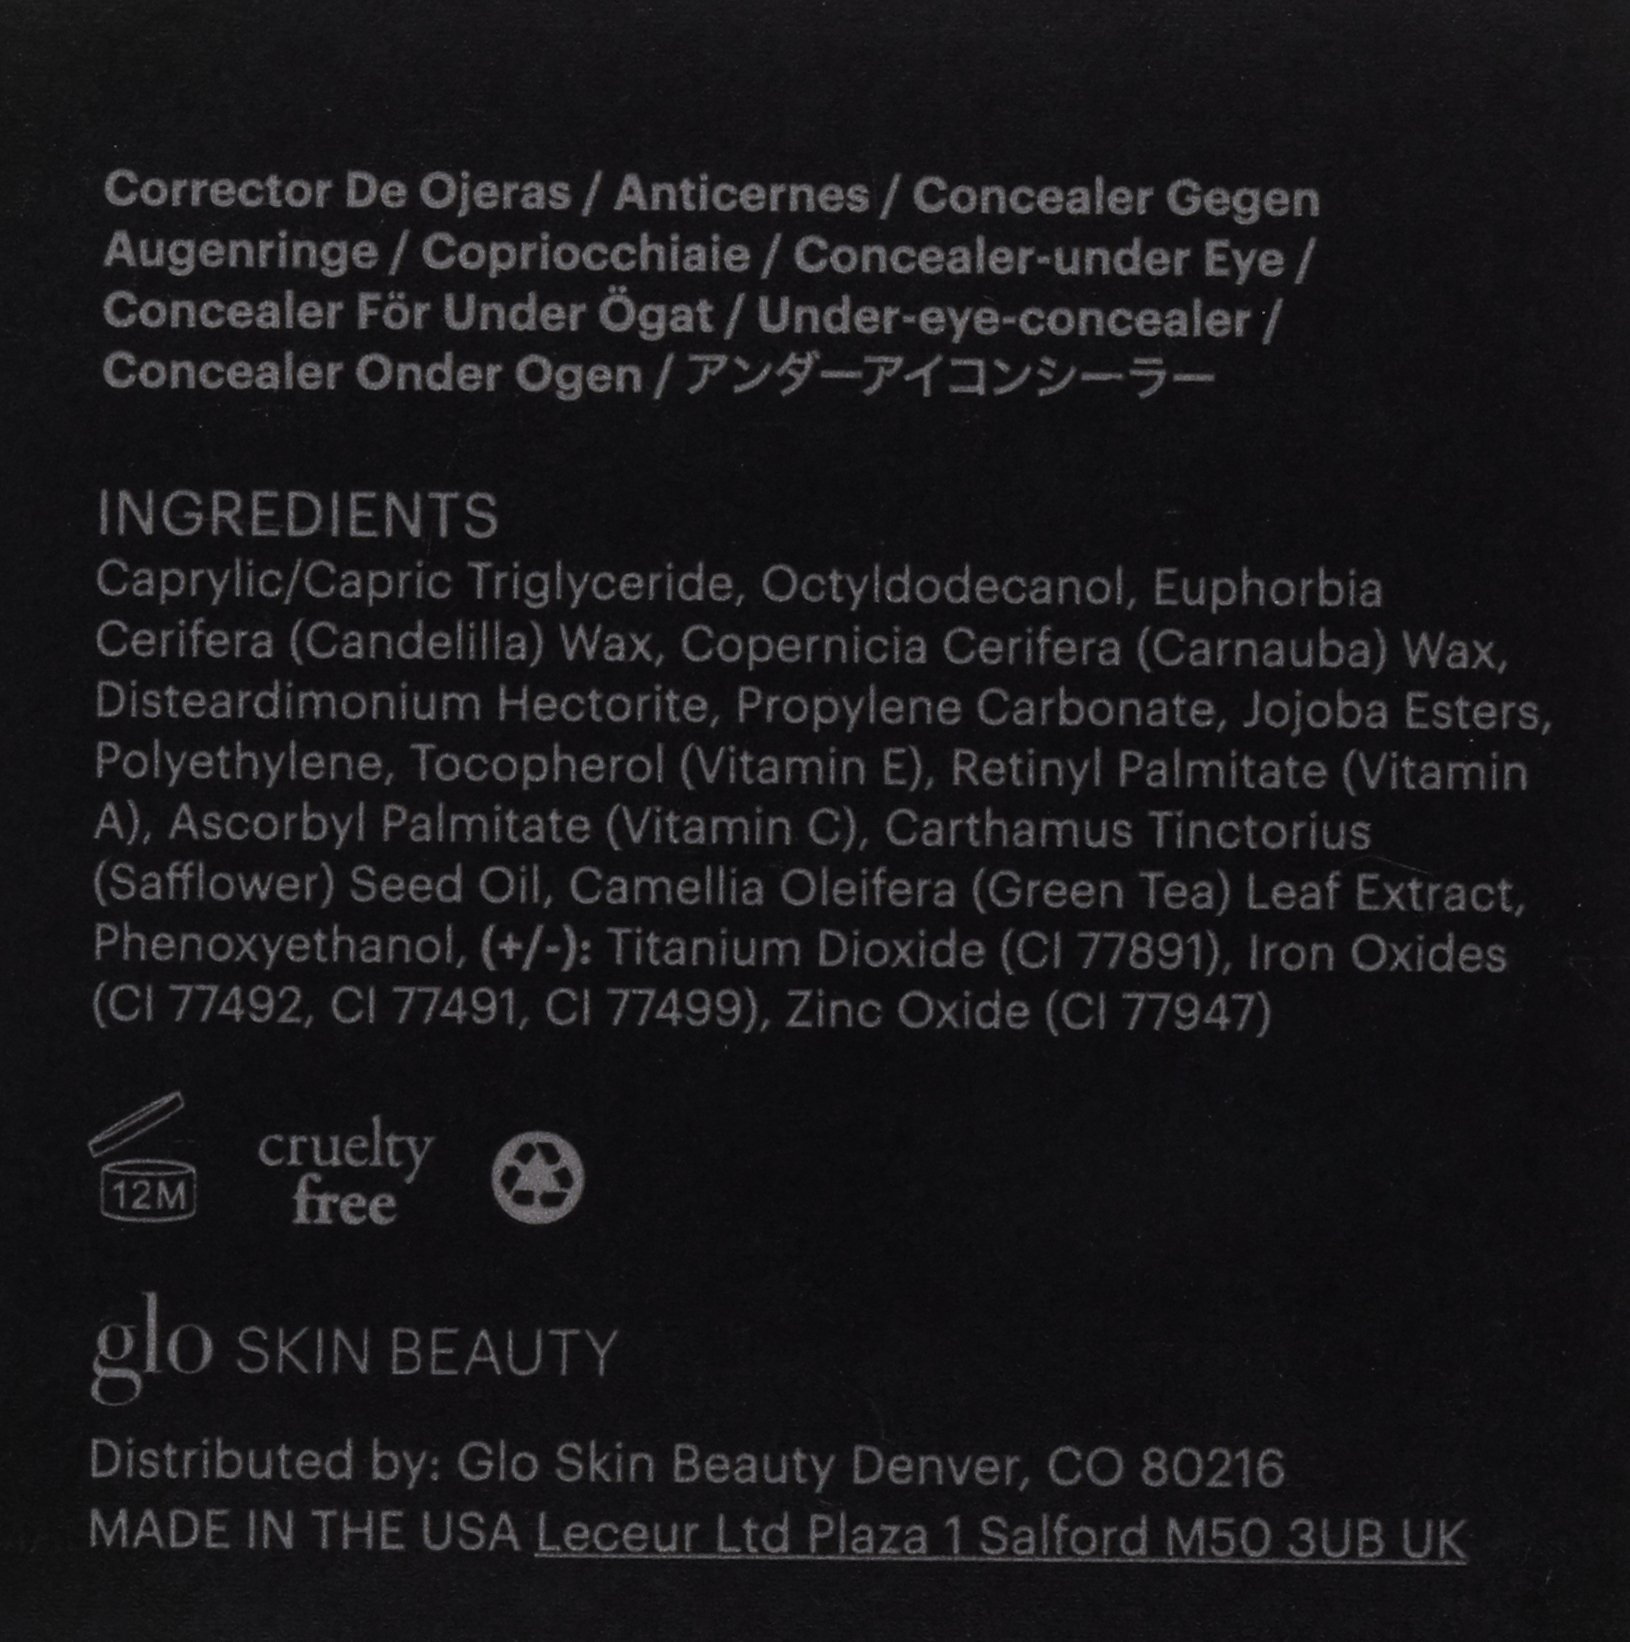 Glo Skin Beauty Under Eye Concealer - Honey - Mineral Makeup Concealer, 4 Shades   Cruelty Free by Glo Skin Beauty (Image #3)